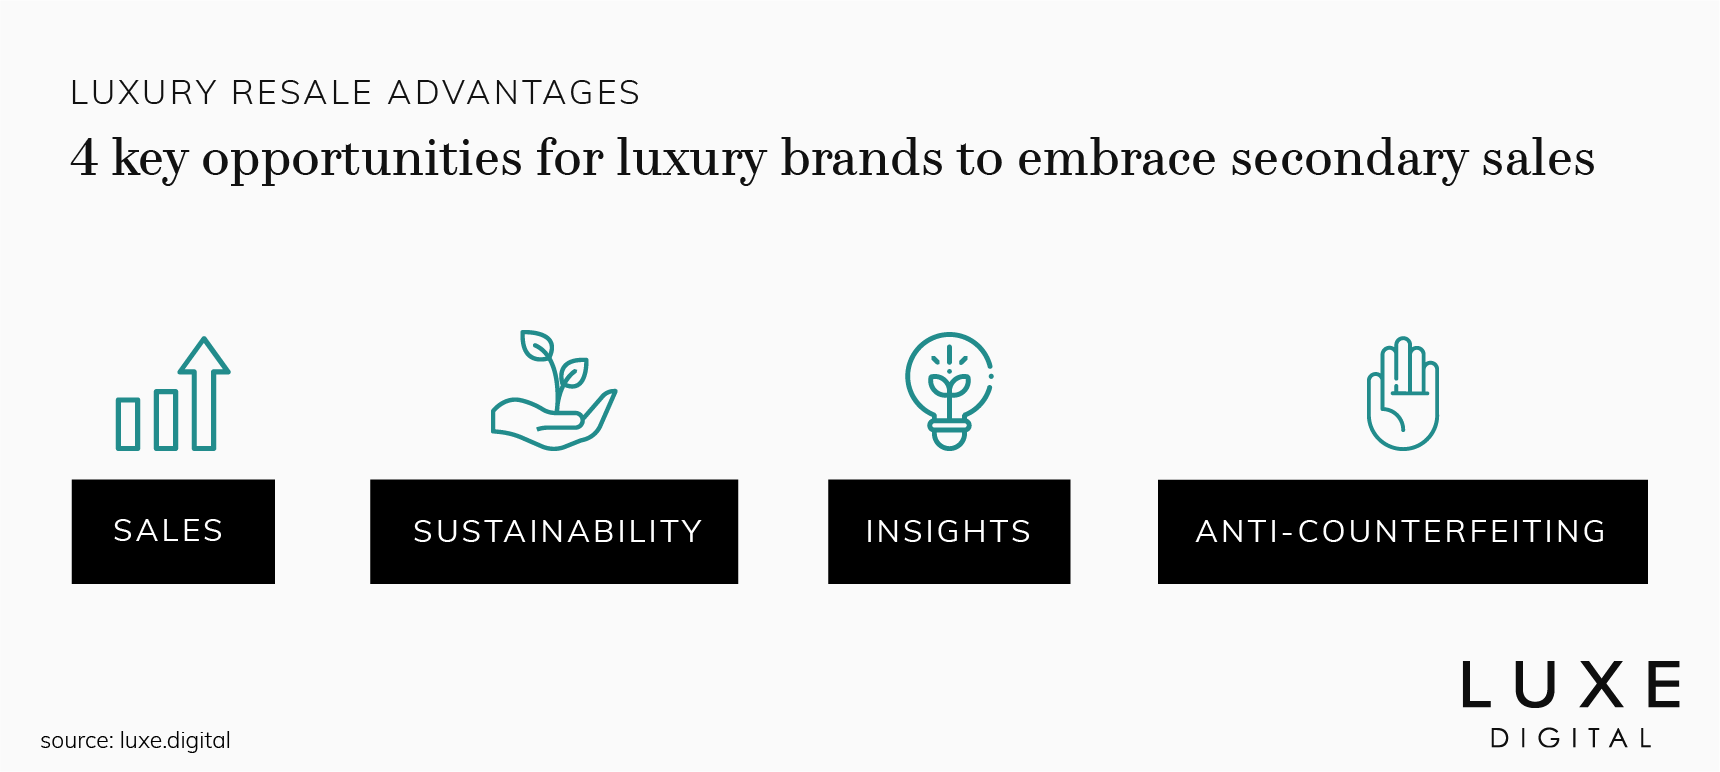 luxury resale brands opportunities luxe digital